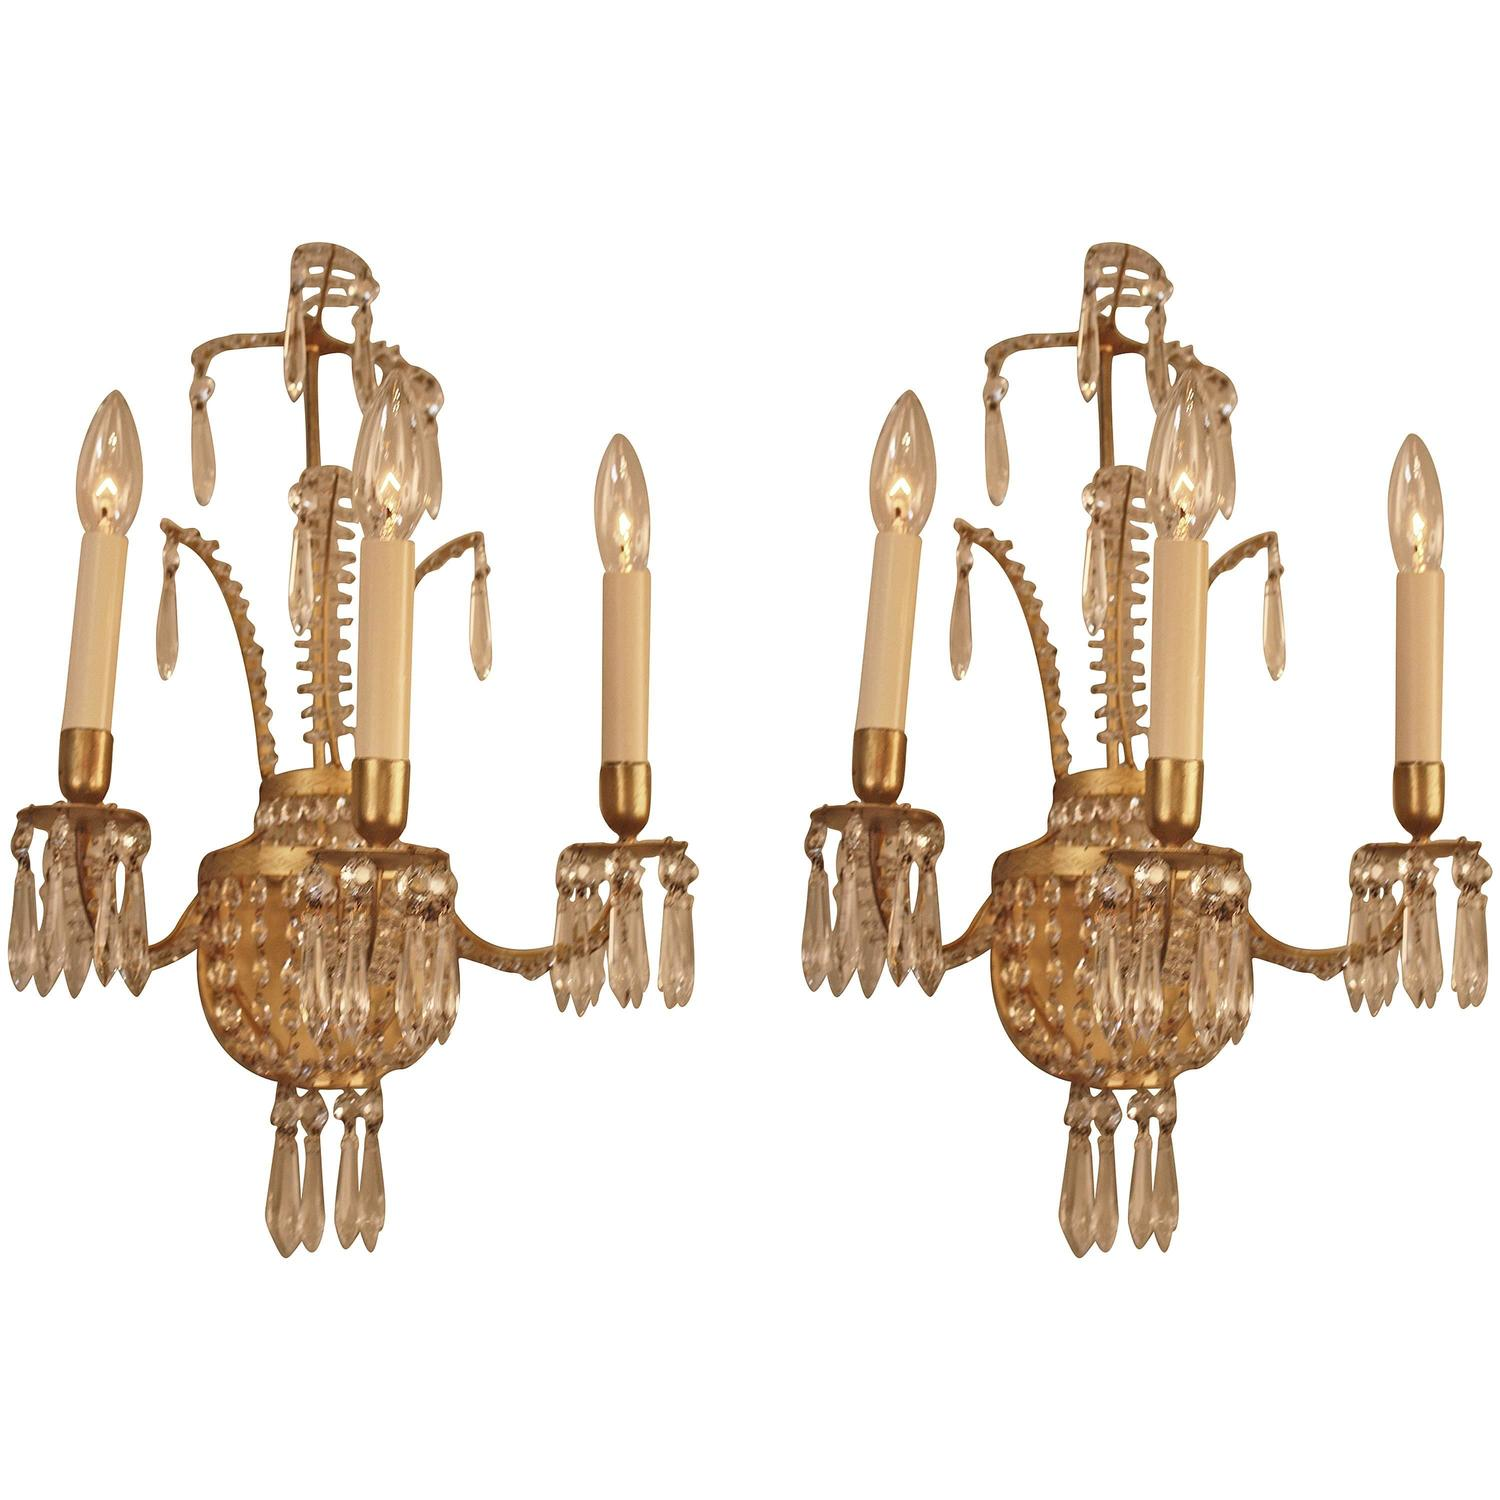 Inexpensive Crystal Wall Sconces : Pair of 1930s Crystal Wall Sconces For Sale at 1stdibs